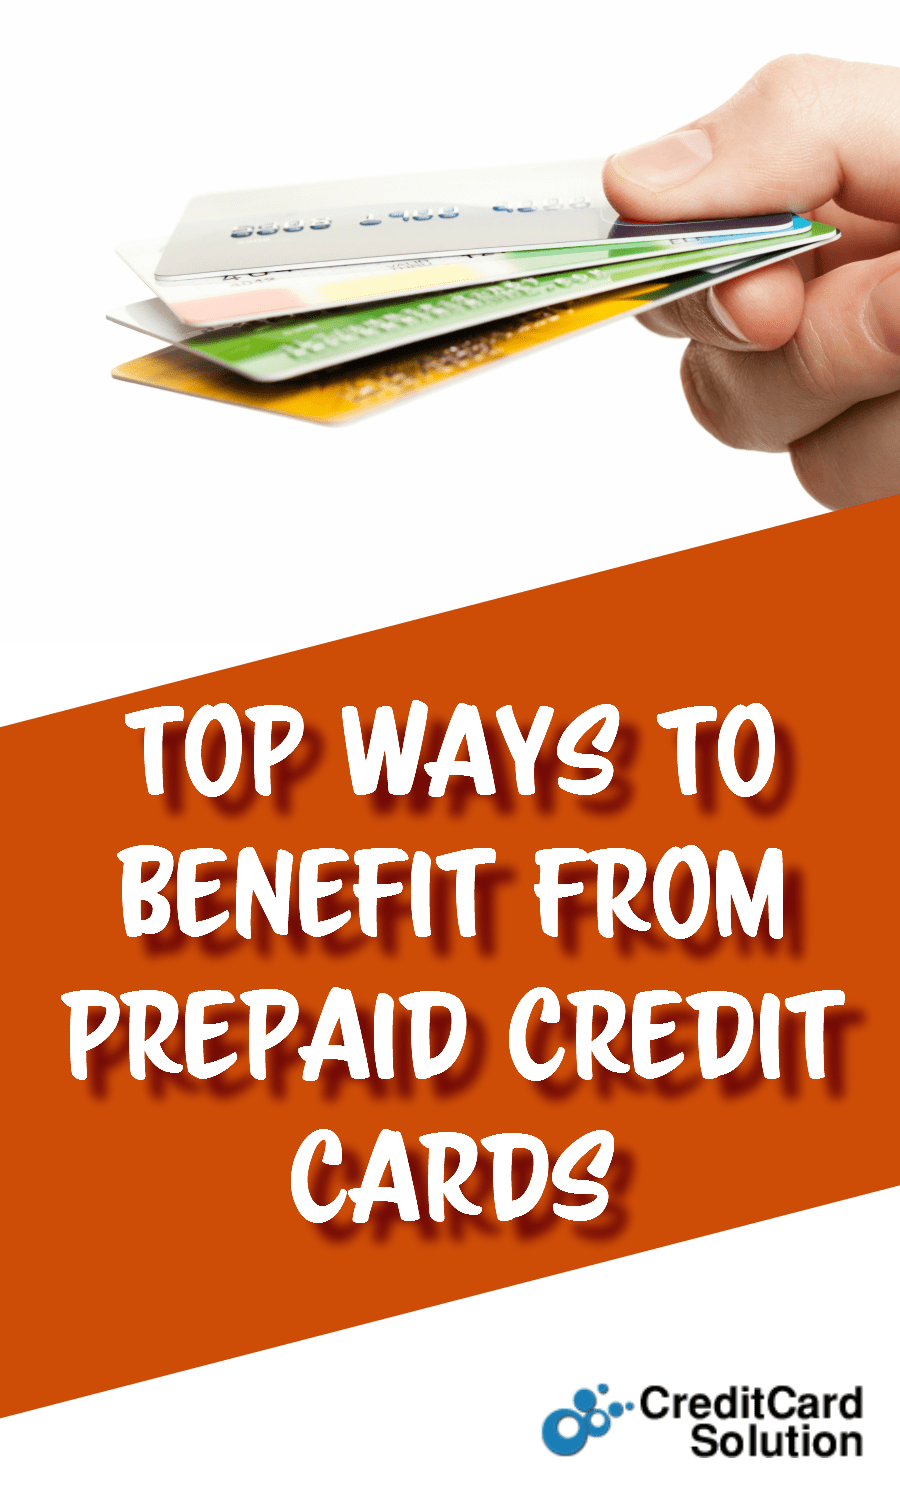 Top Ways To Benefit From Prepaid Credit Cards